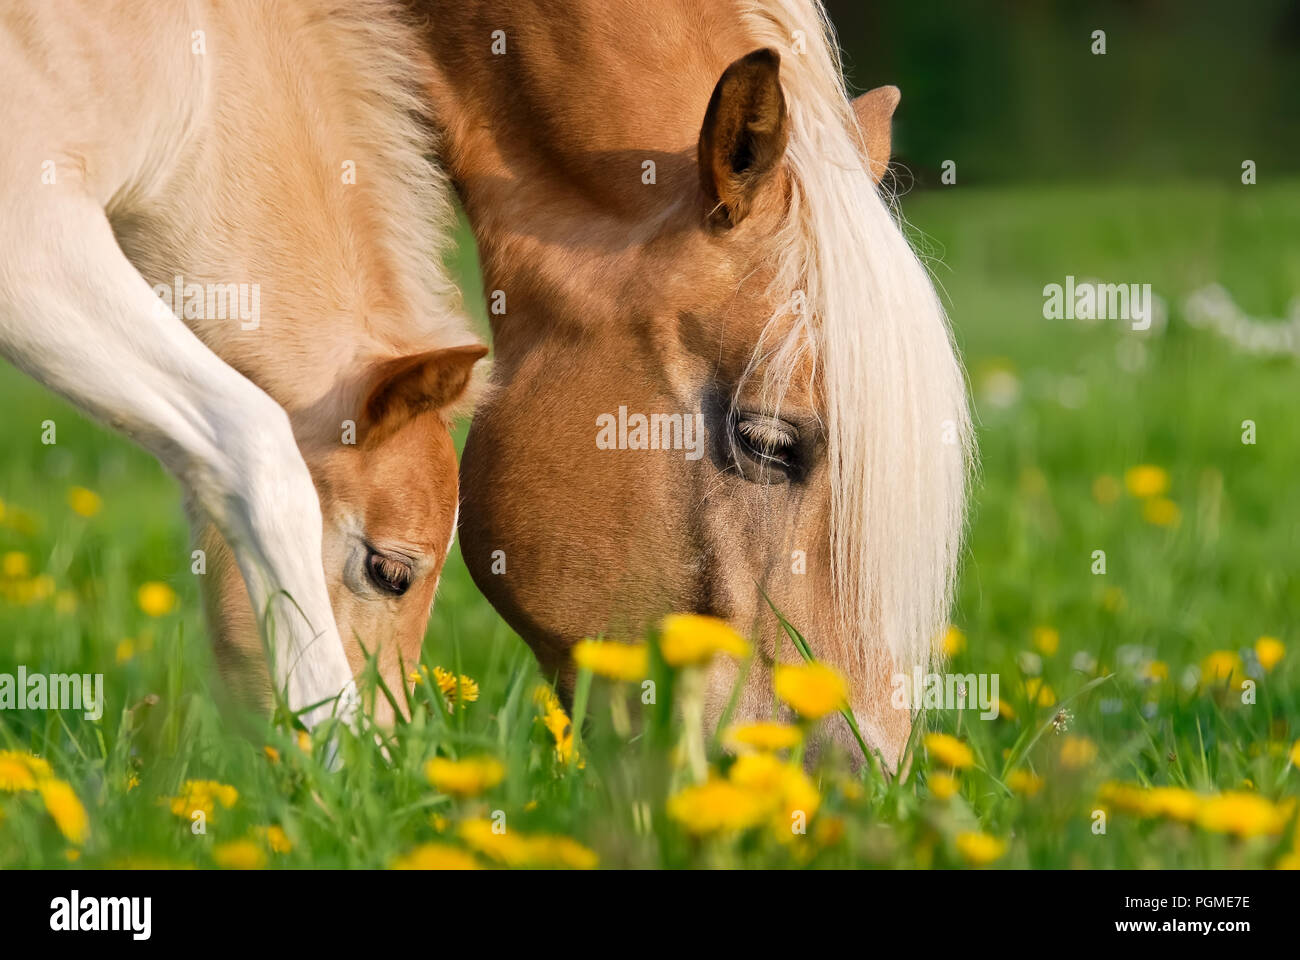 Haflinger horses, mare and foal grazing together in a green grass meadow with dandelion flowers, close up of their heads Stock Photo